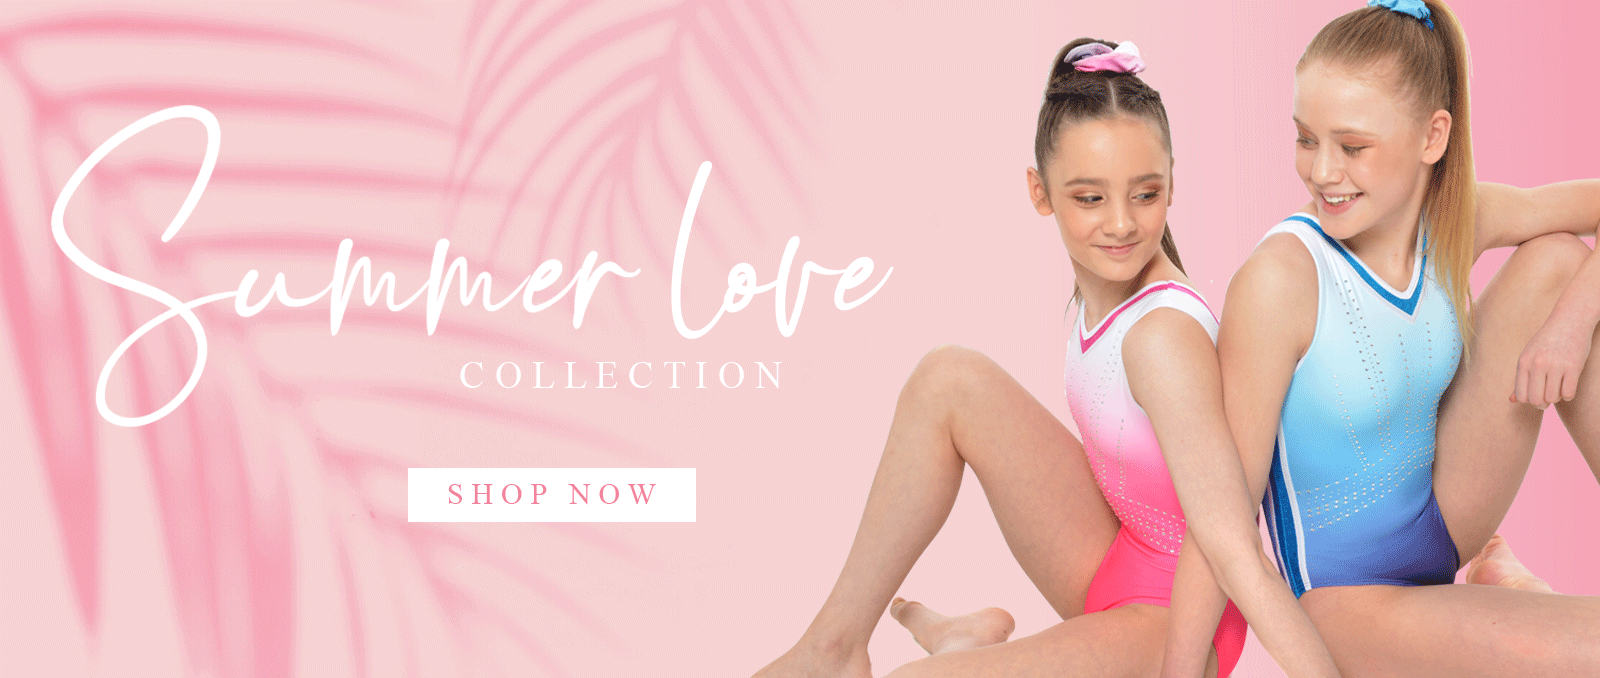 Summer-Love-Collection-hero-launch